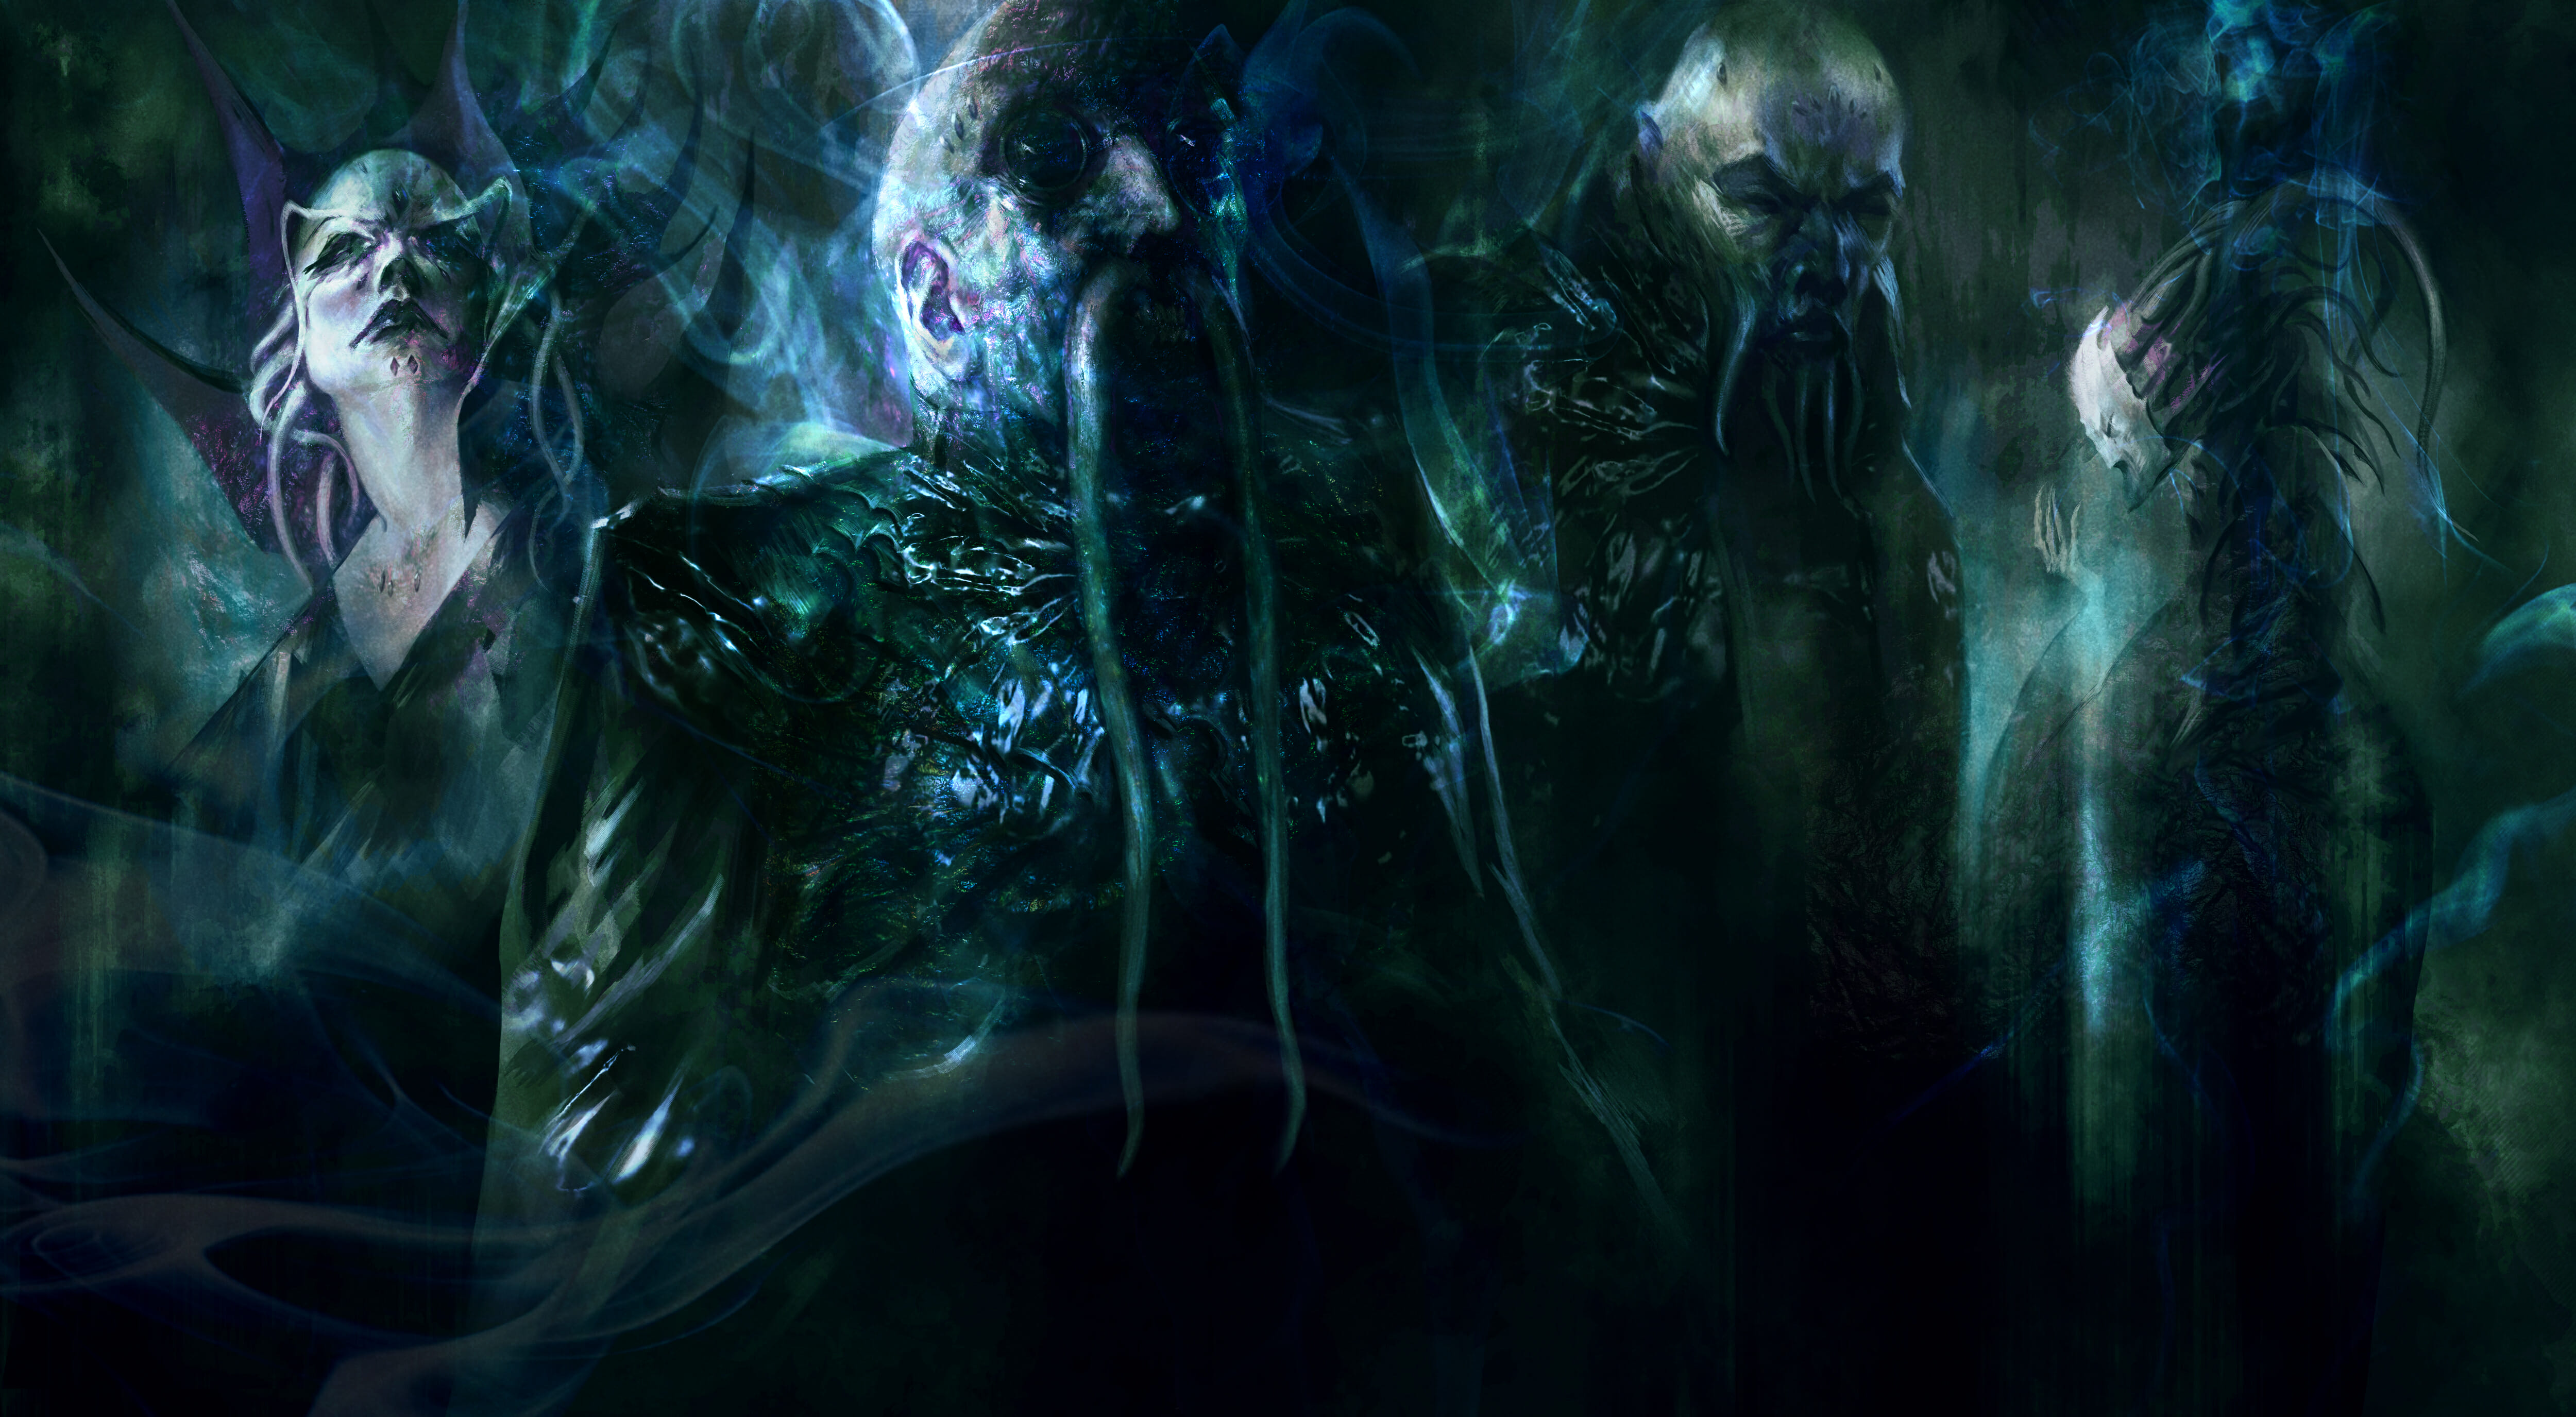 Sundermages